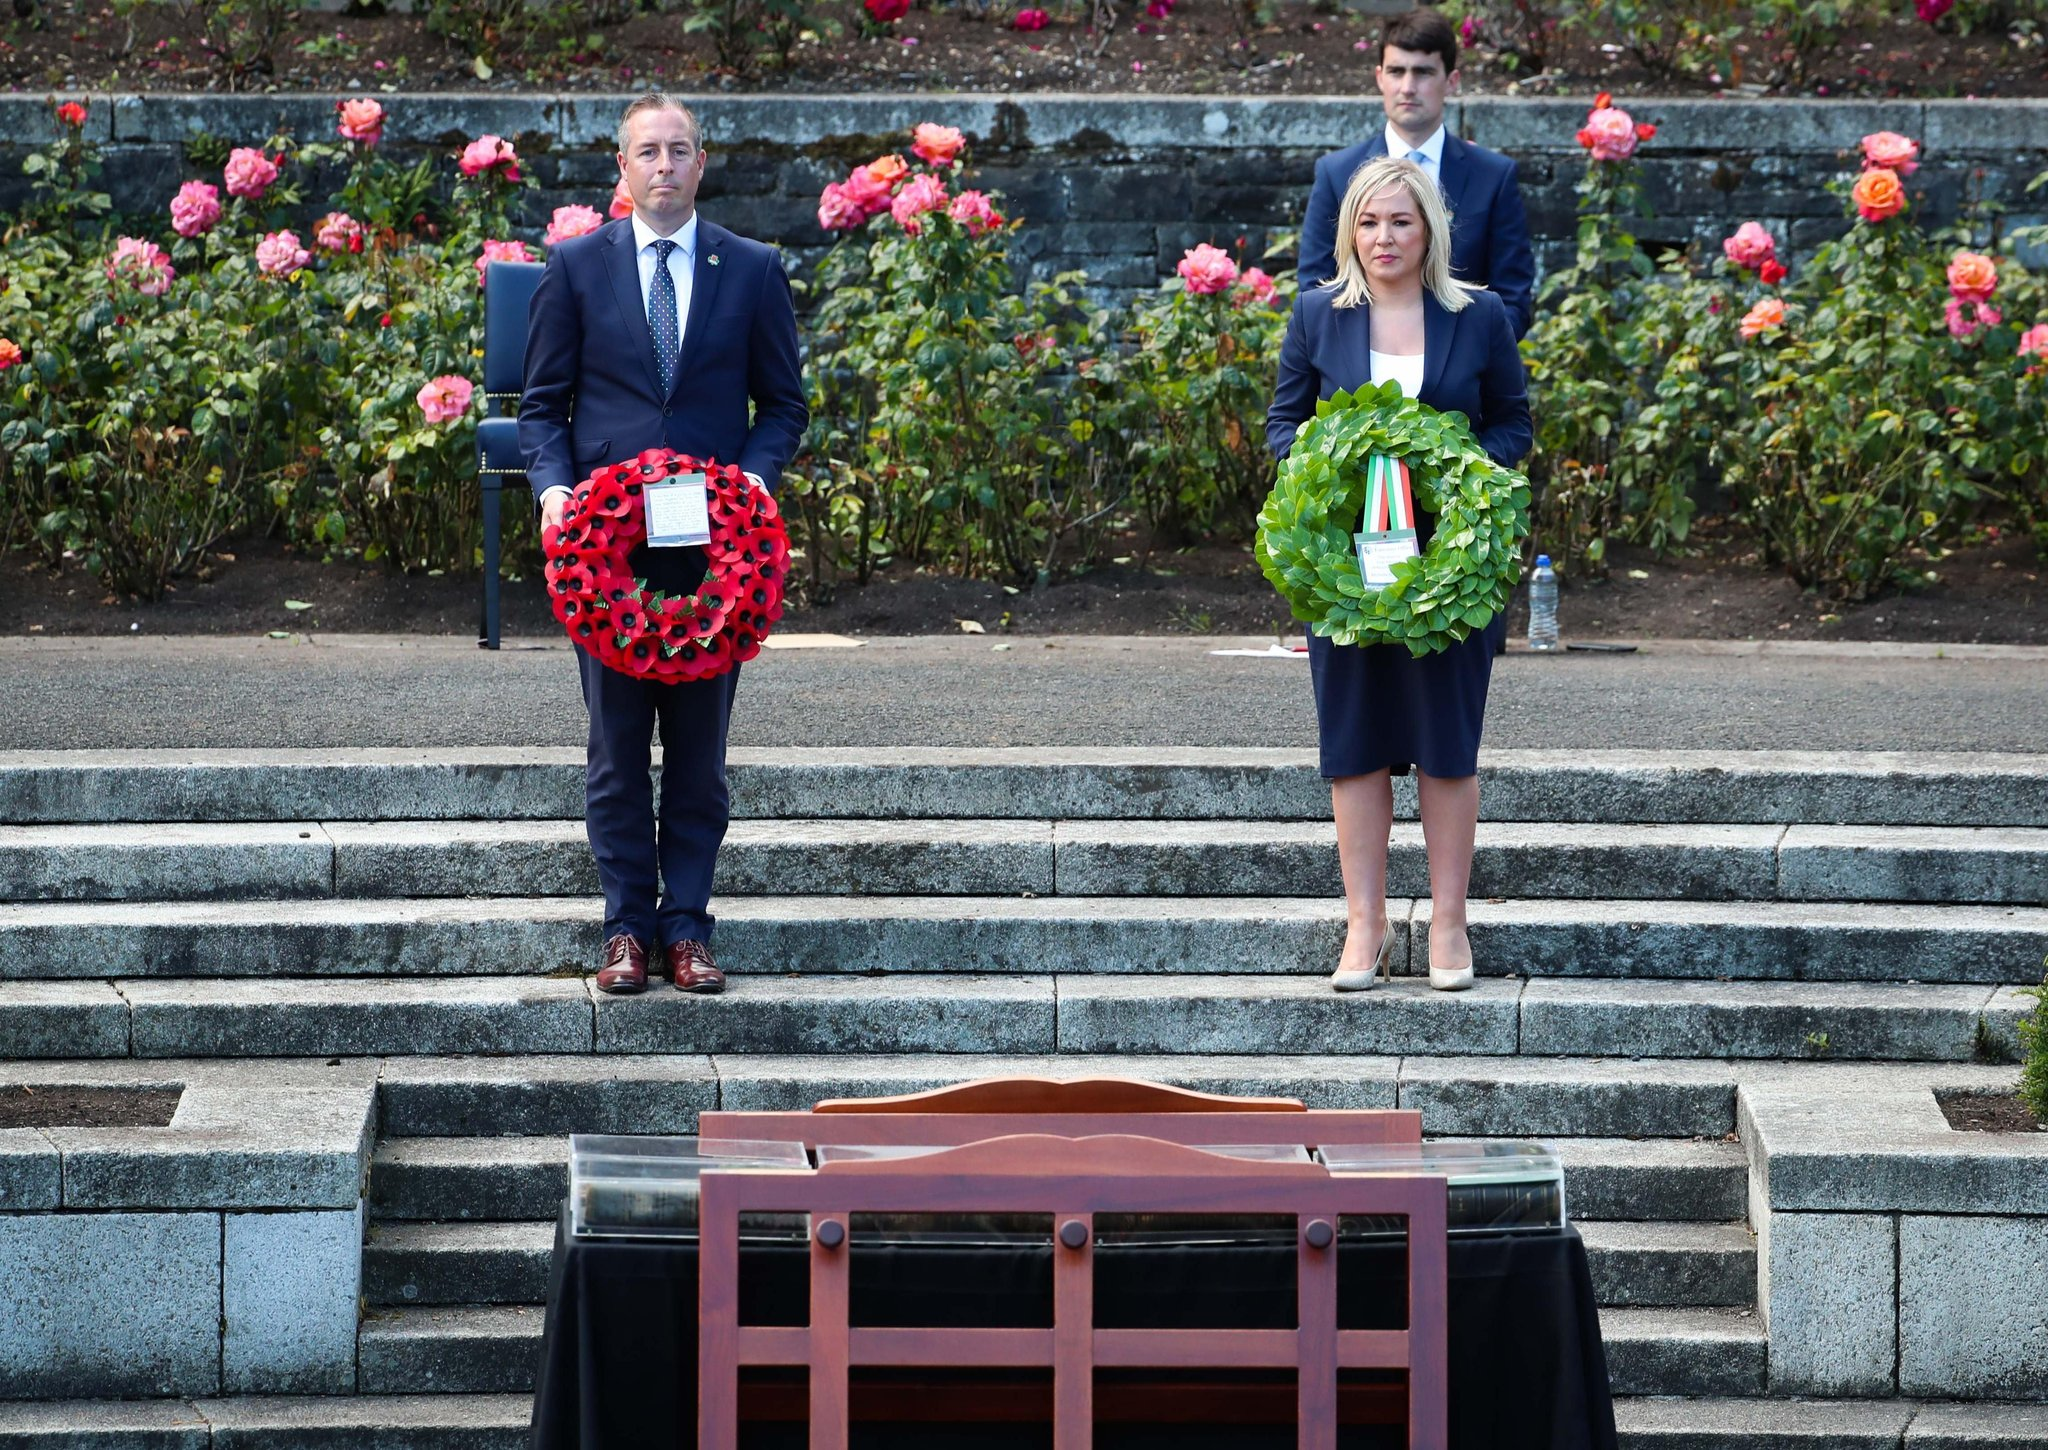 O'Neill lays green wreath for Somme fallen saying: 'I hope this shows I respect all traditions'